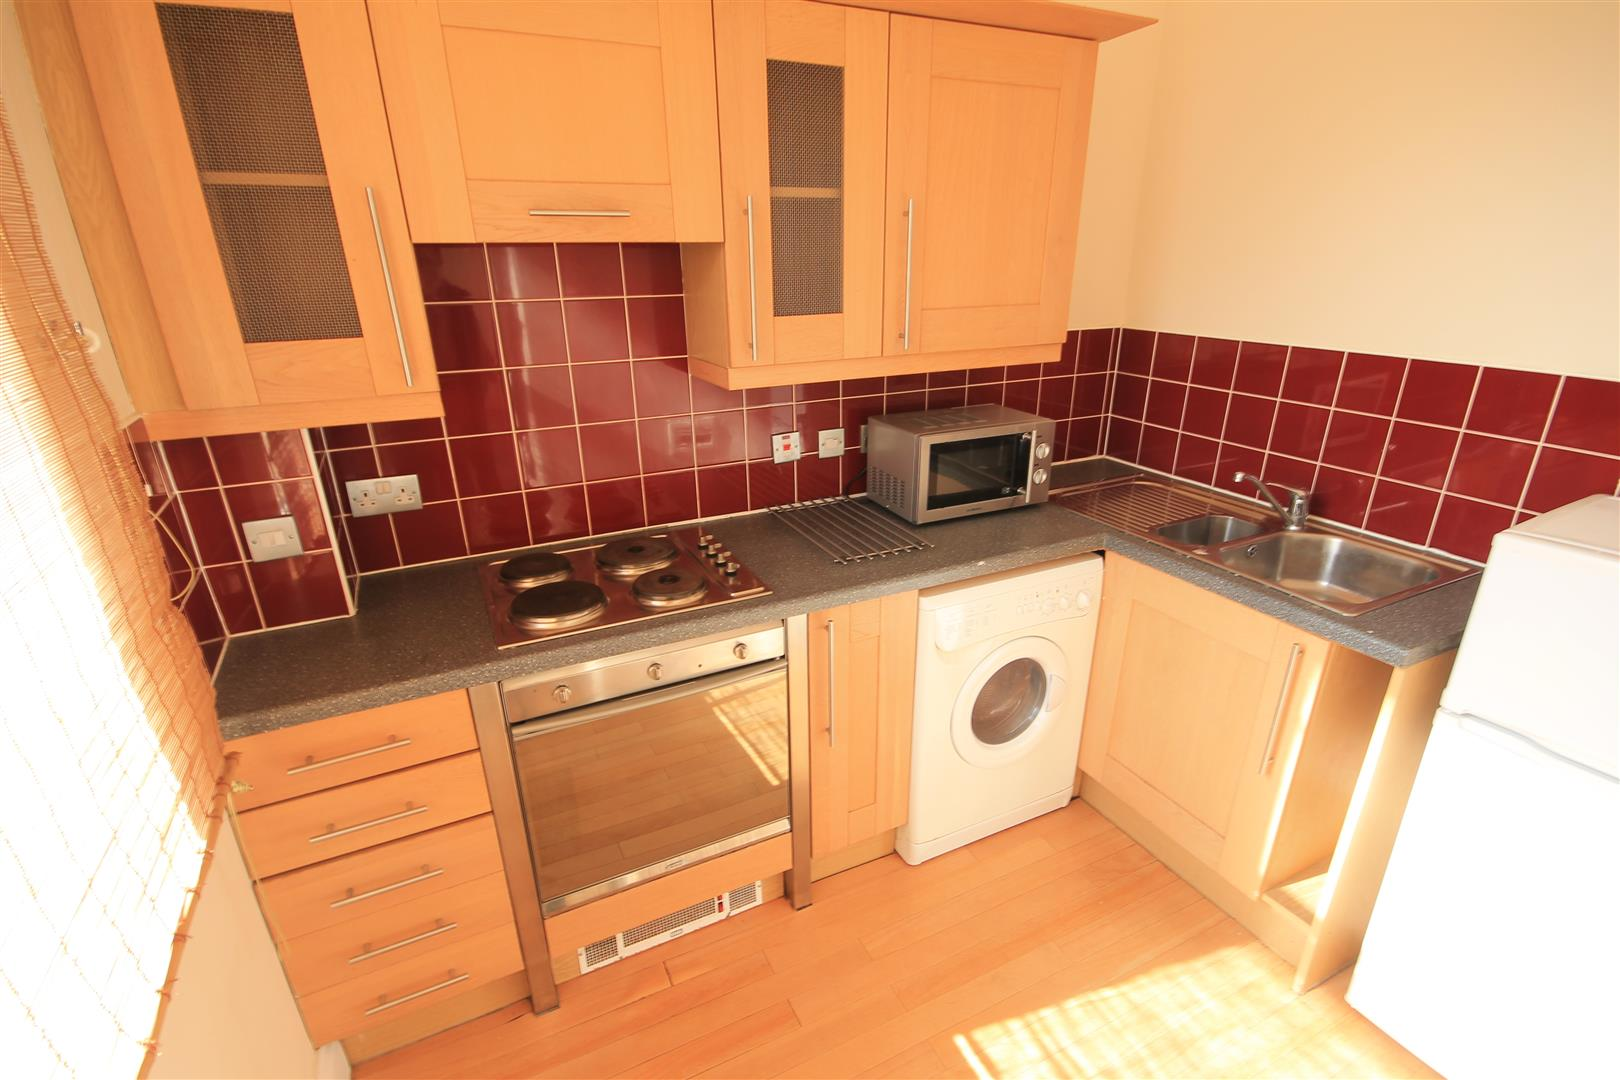 Victoria Chambers Newcastle Upon Tyne, 1 Bedrooms  Apartment ,To Let